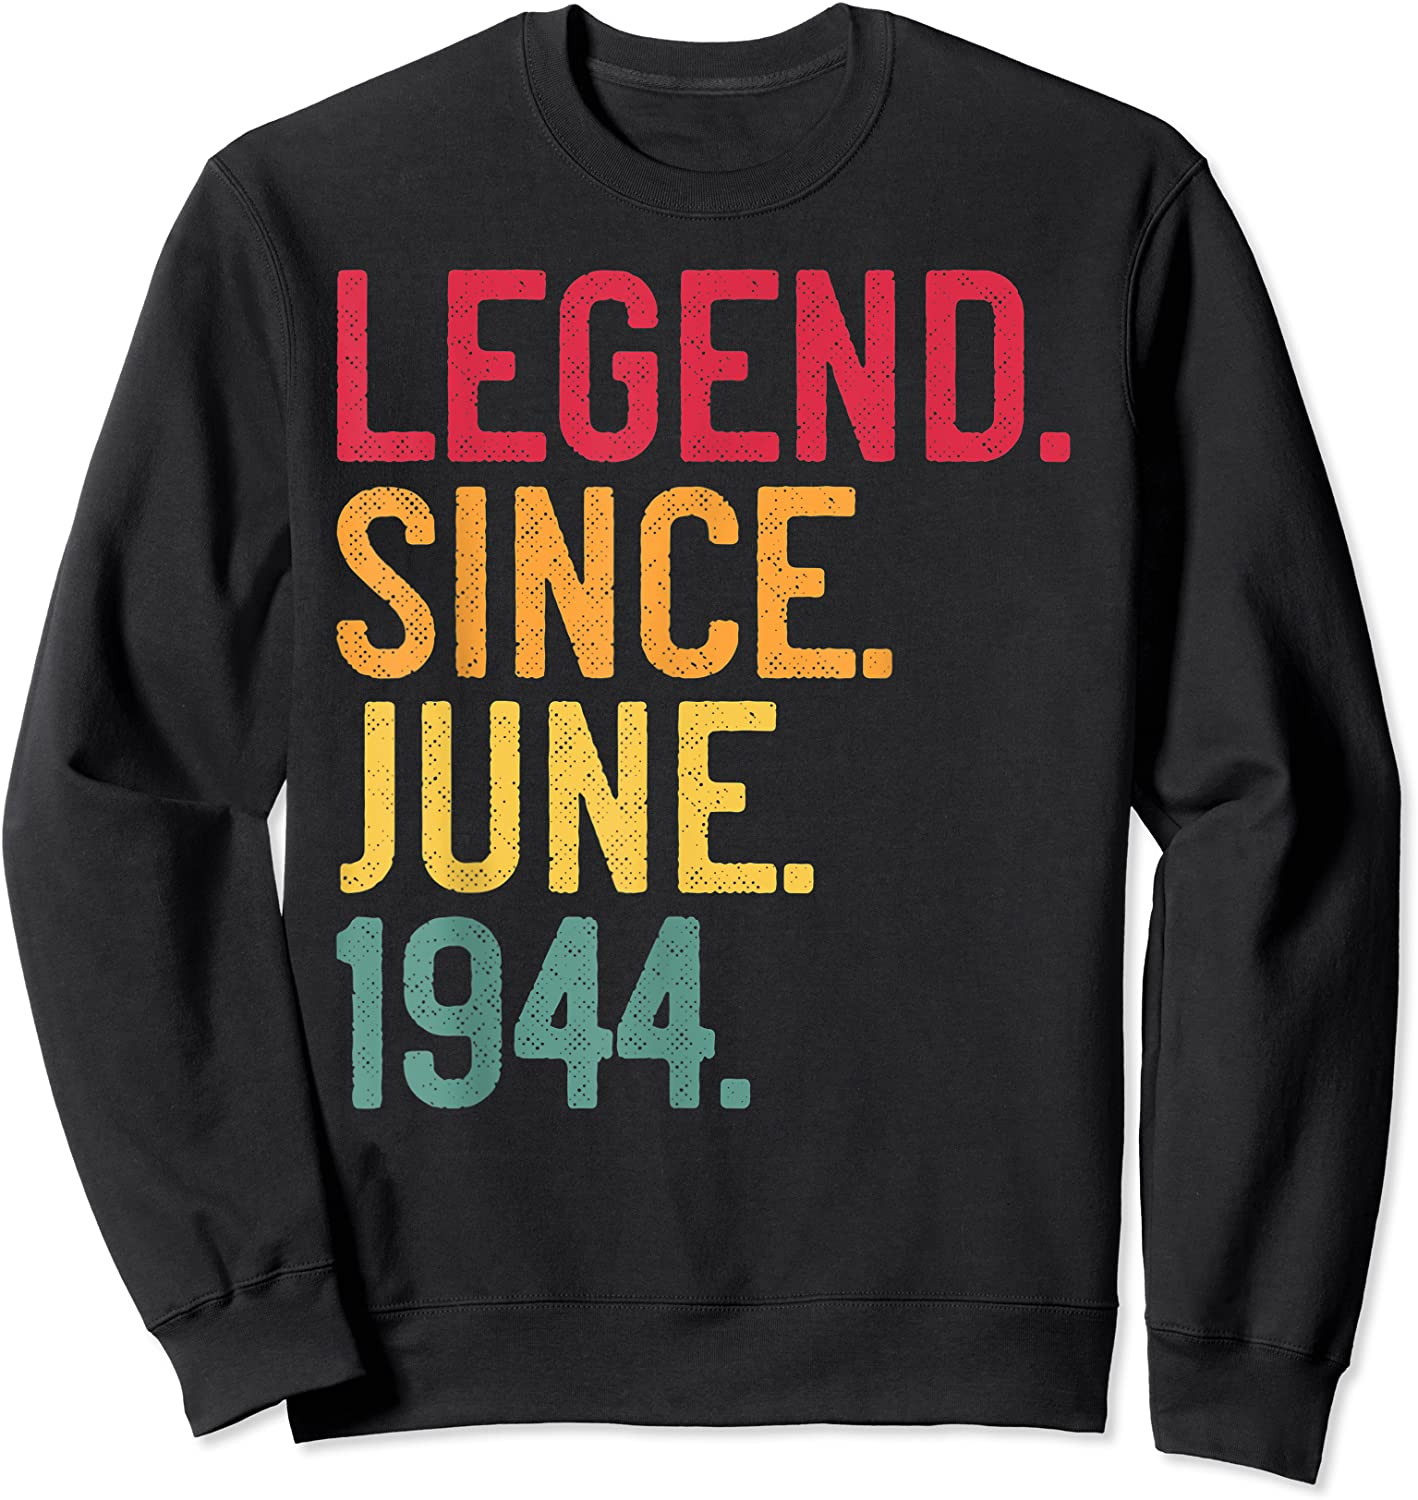 Legend Since June 1944 77th Birthday 77 Years Old Vintage T-shirt Crewneck Sweater